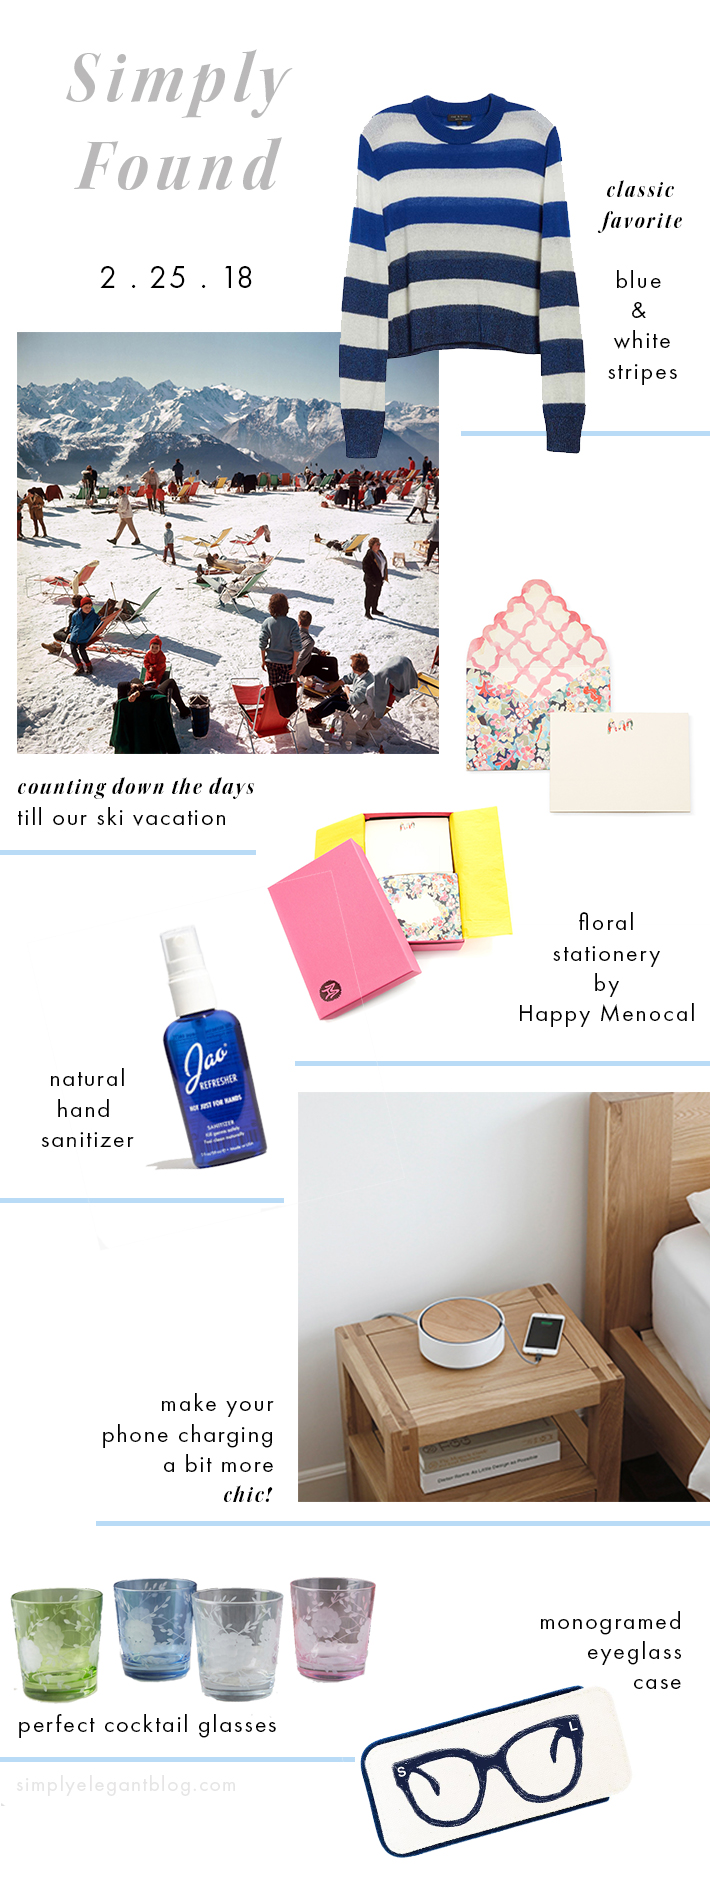 Simply Found 35 - Happy Menocal, Jao Hand Sanitizer, Slim Aarons